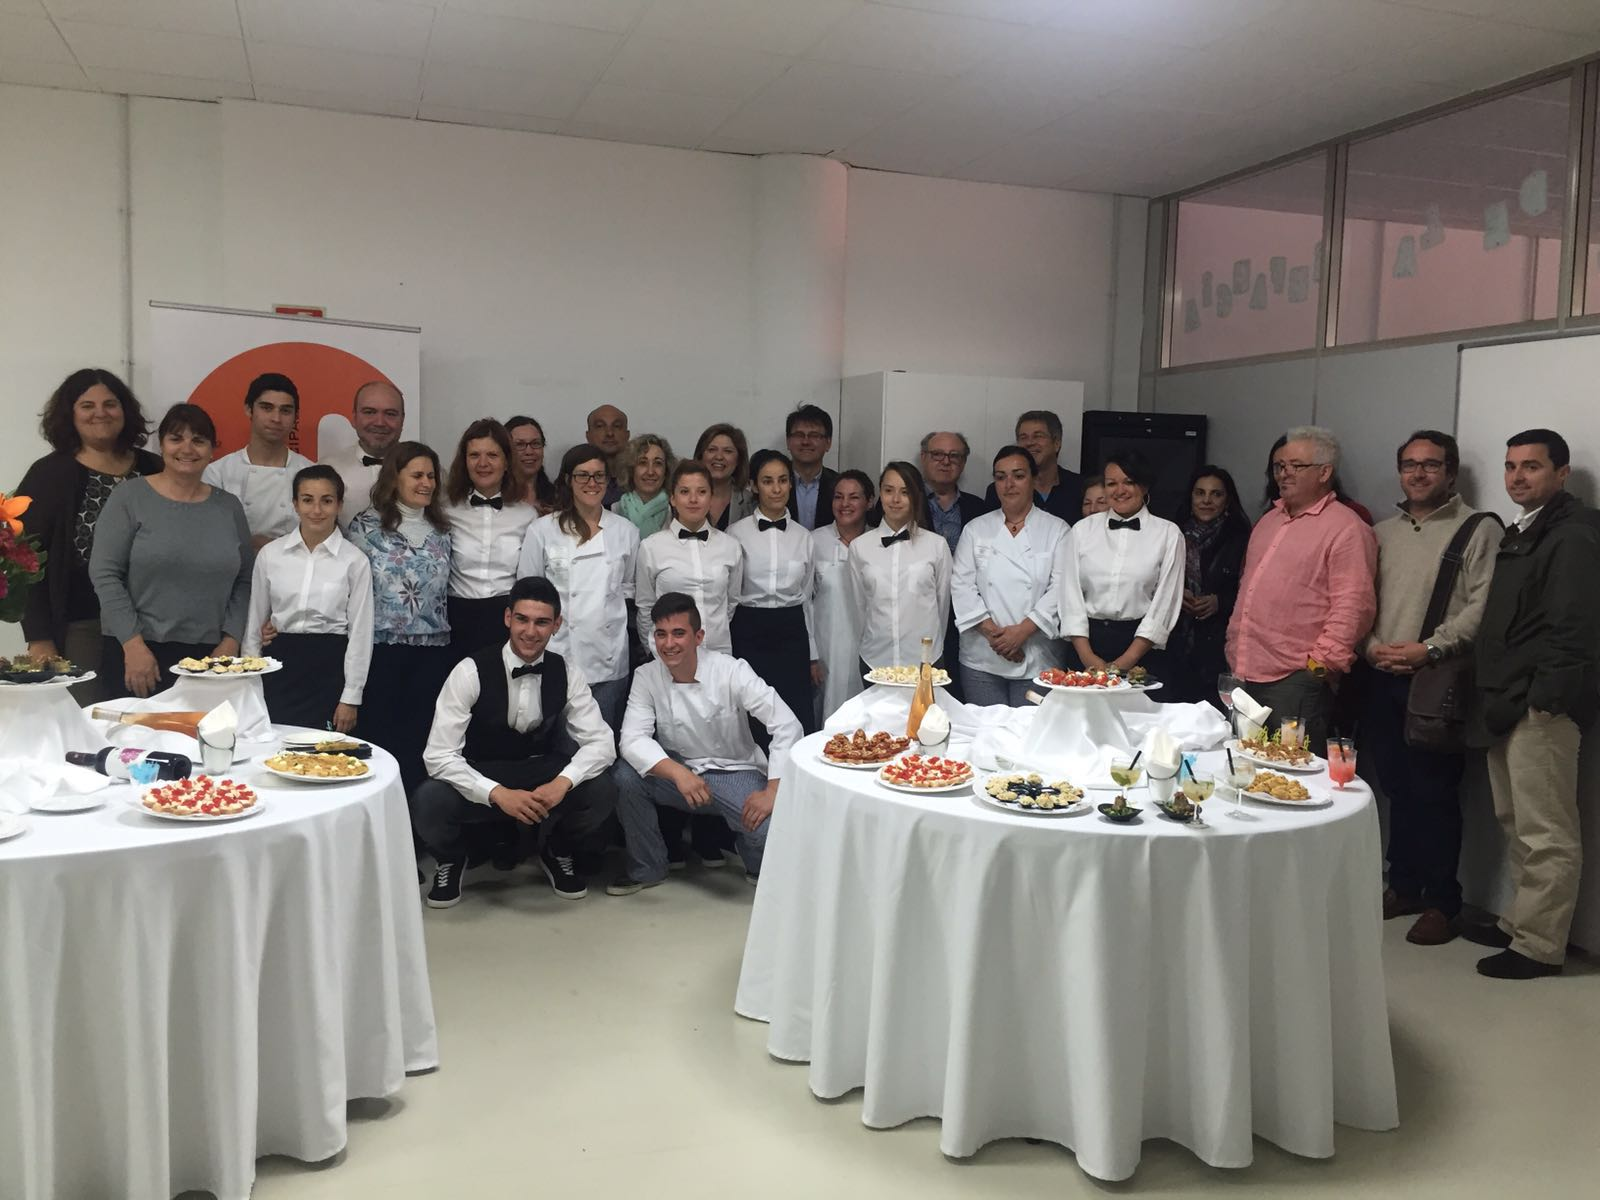 Final curs Escola Hosteleria 2016 2 002